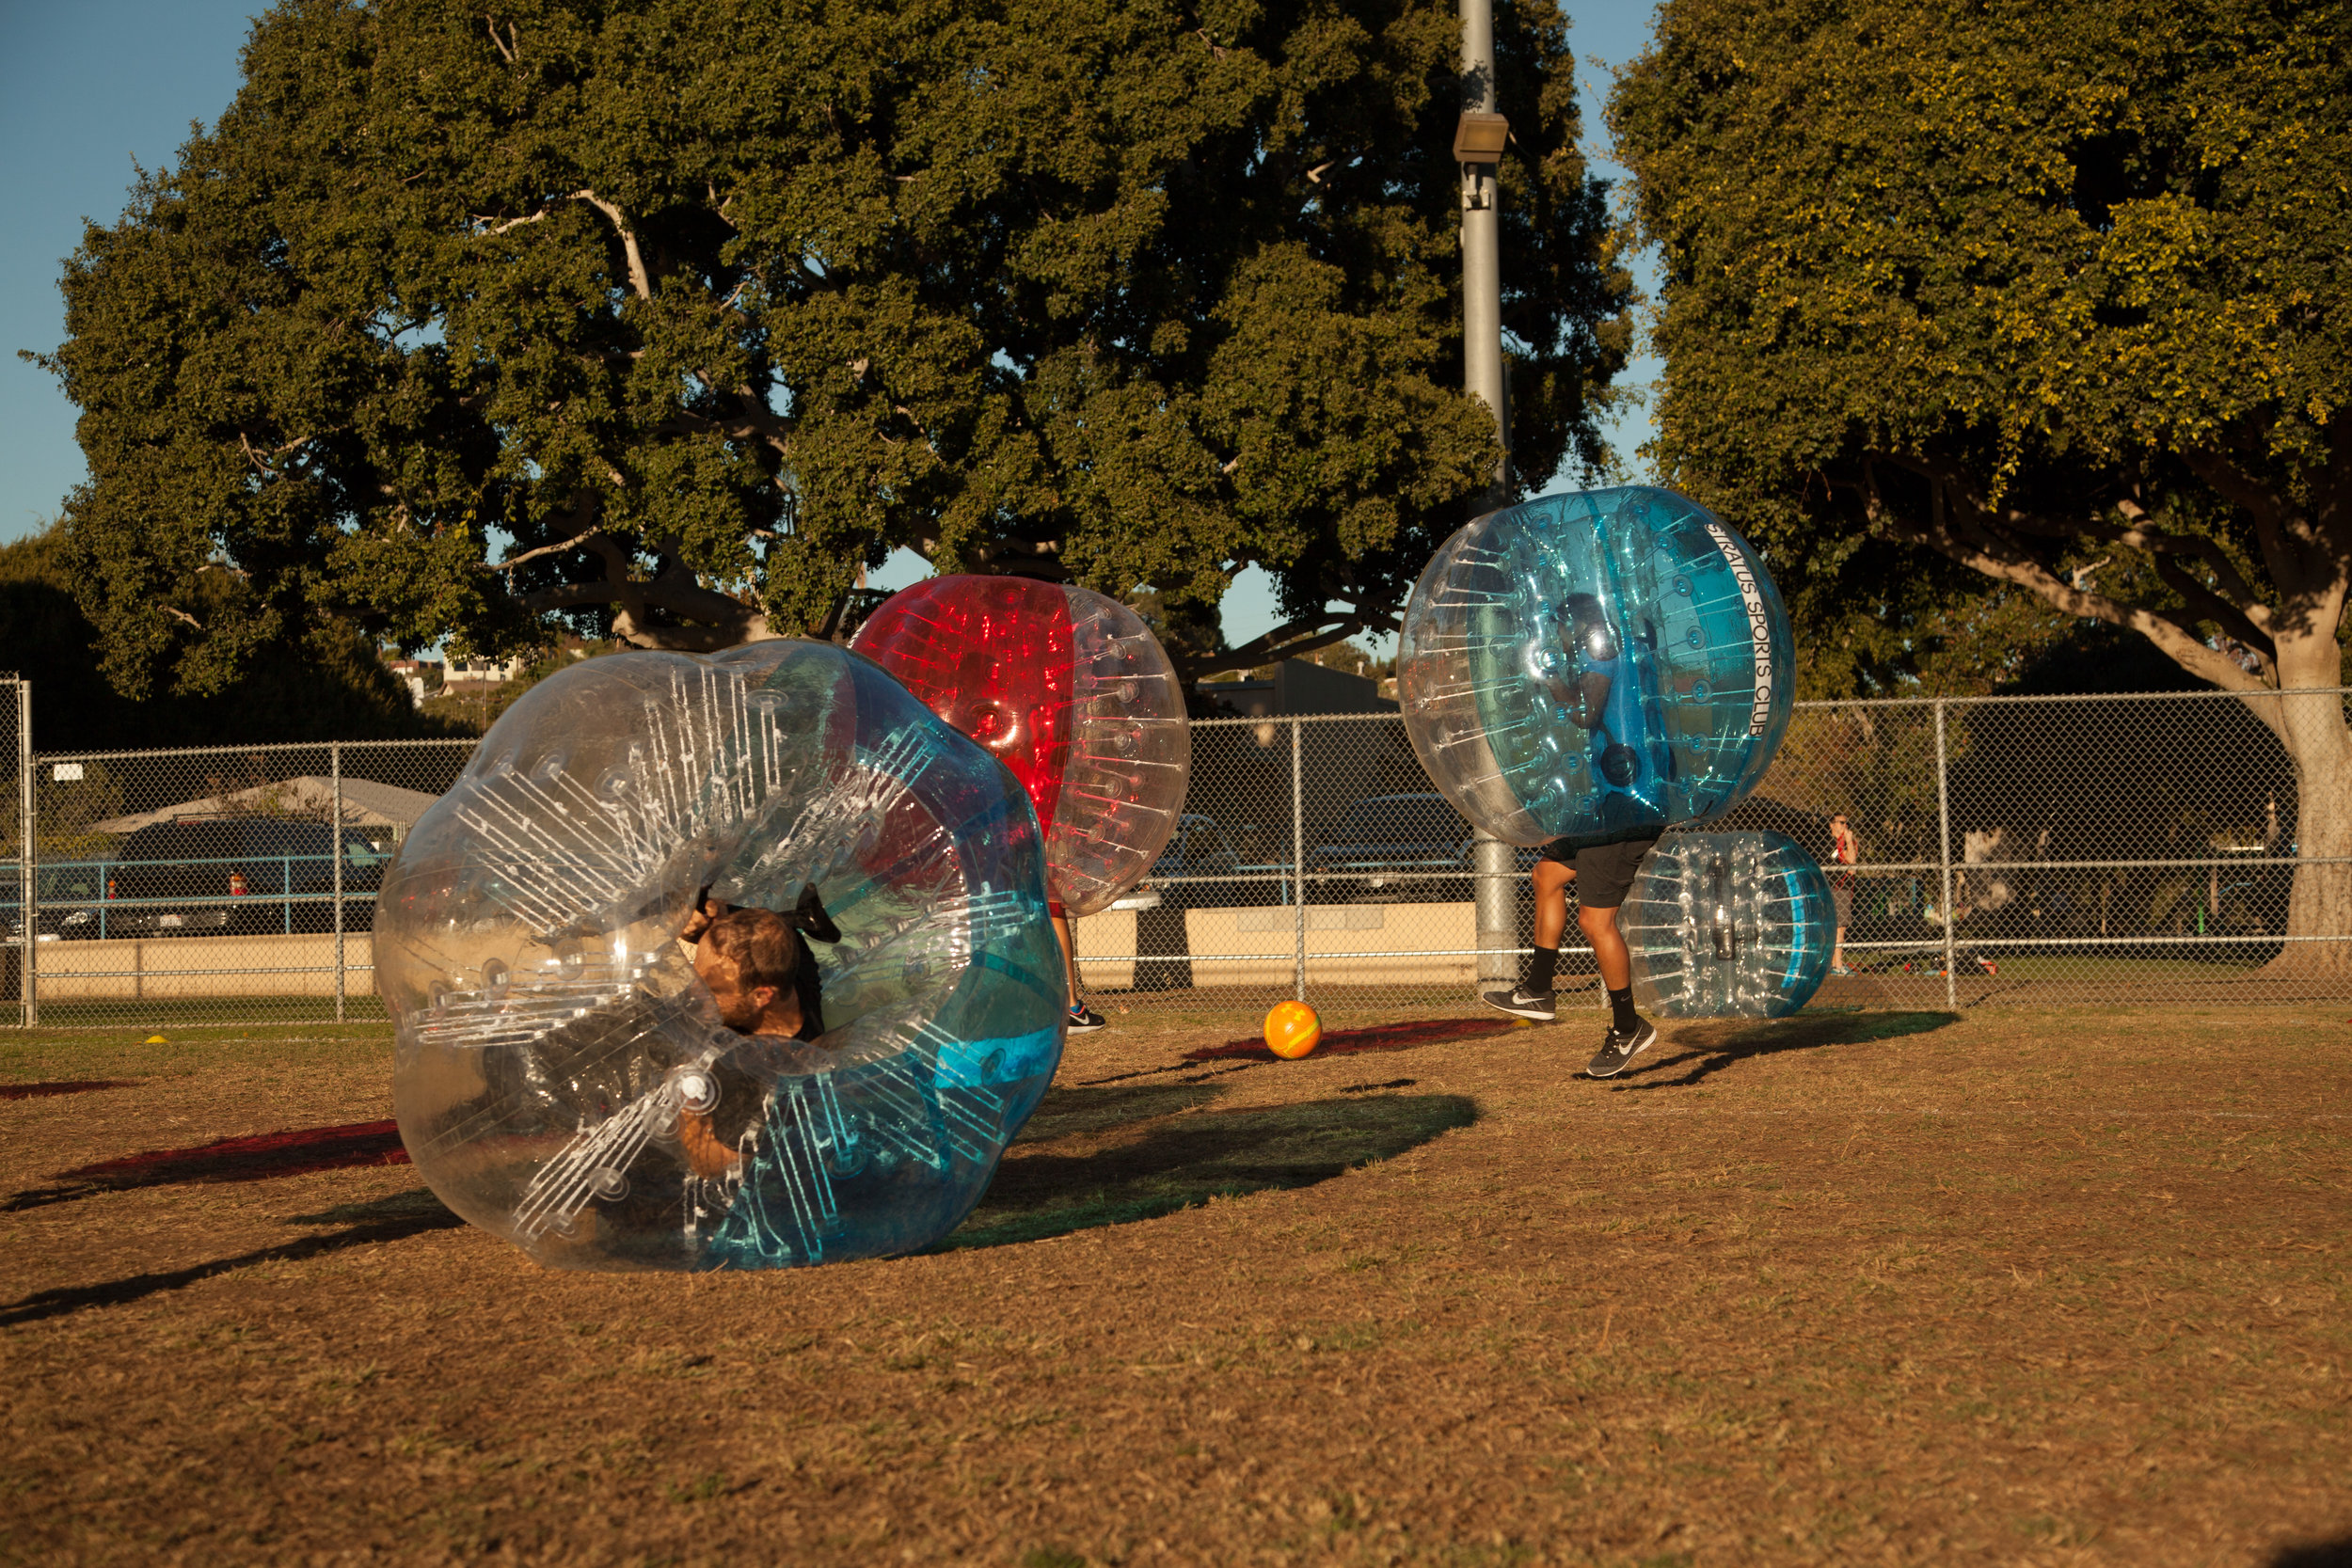 bubble soccer knock down games are fun at park in Glendale